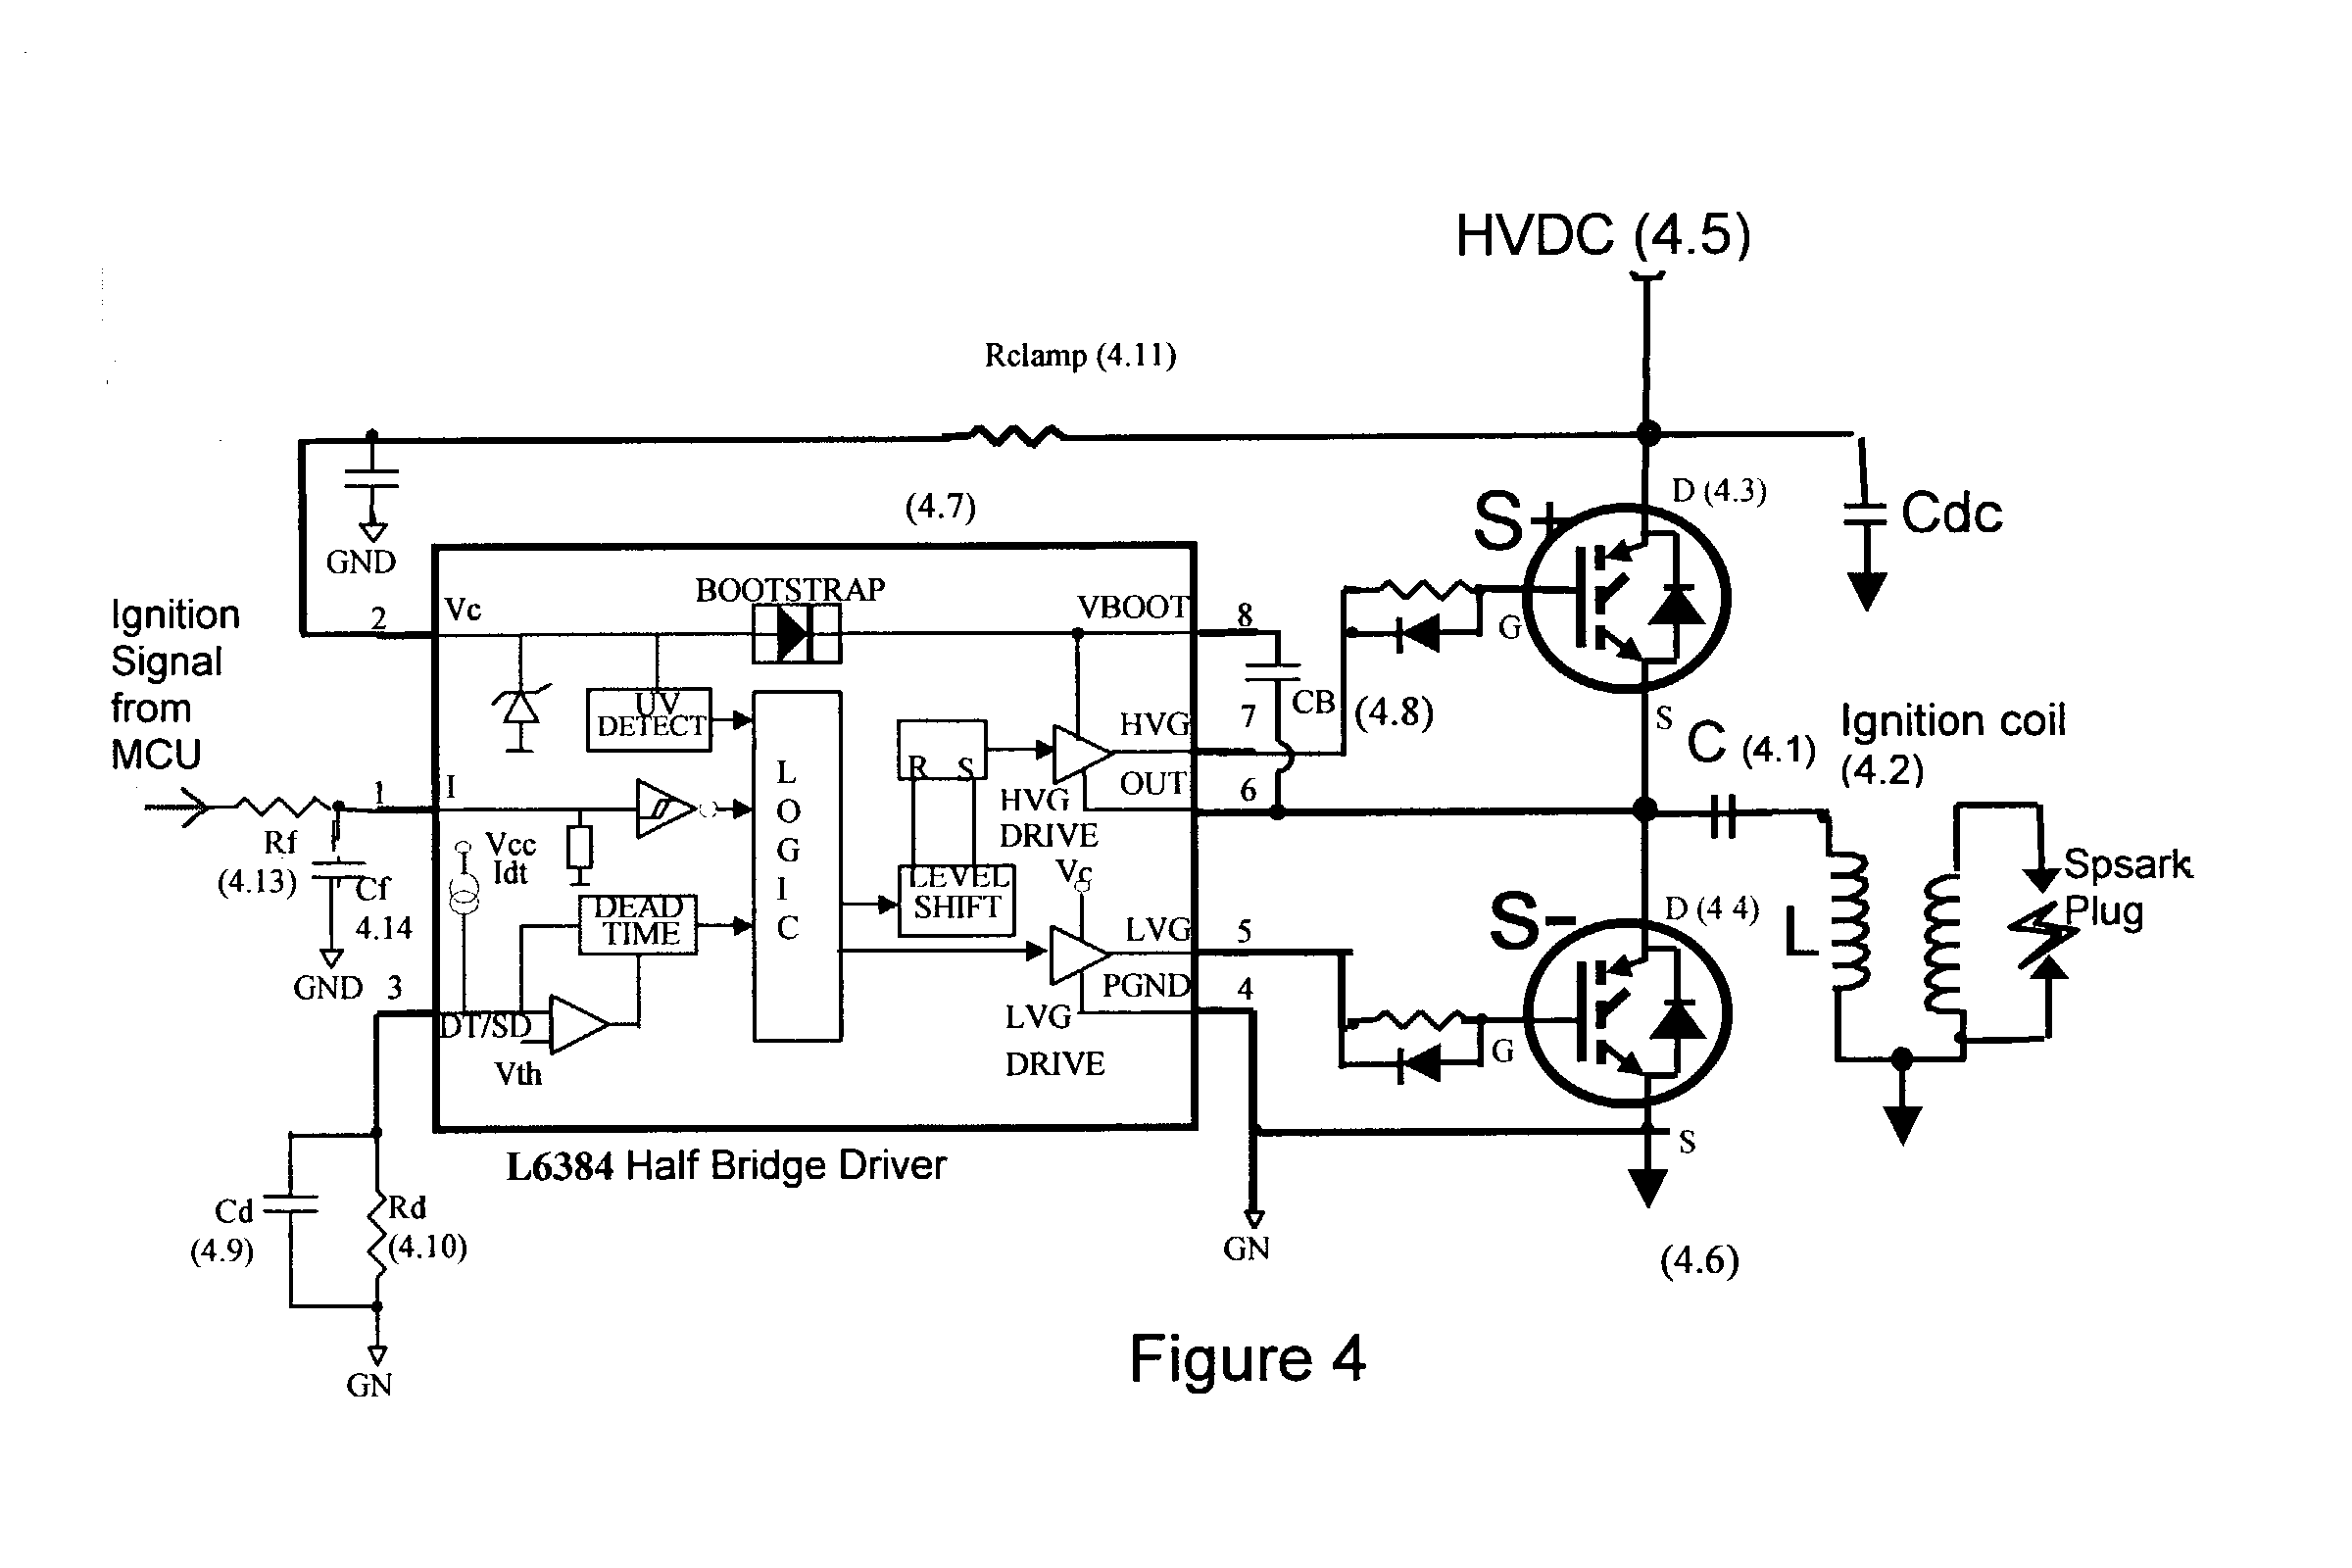 cdi ignition schematic cdi ignition schematic wiring diagrams all  cdi ignition schematic wiring